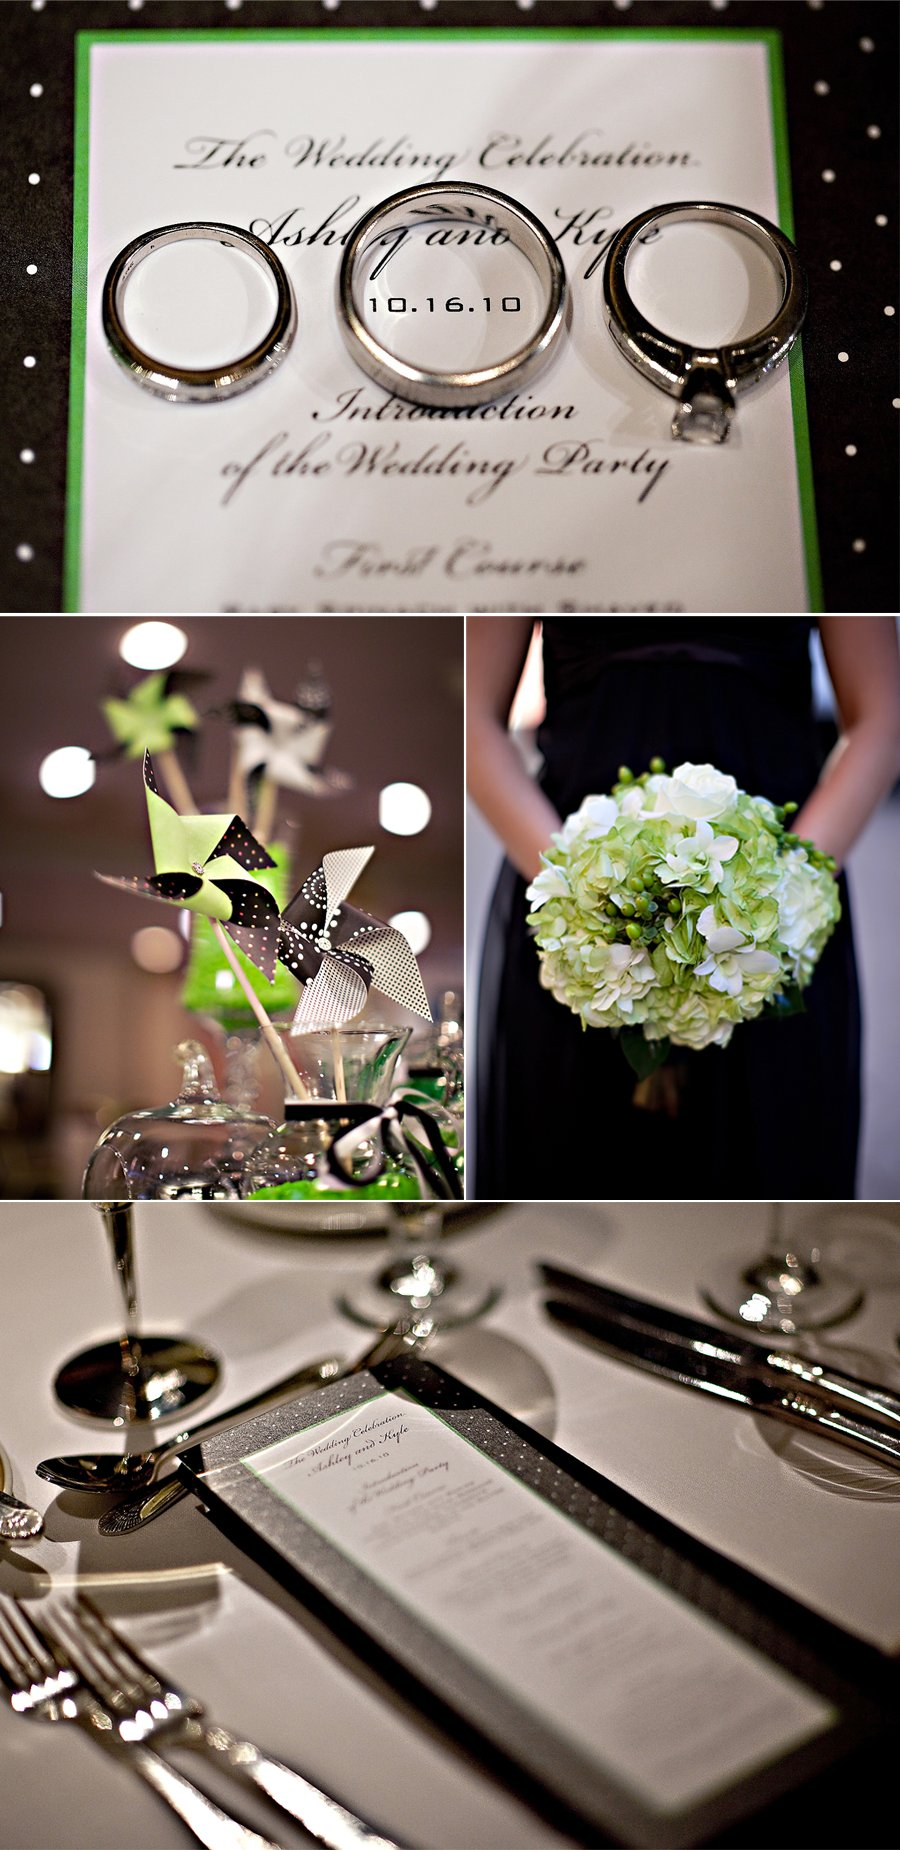 Wedding-colors-reception-venue-decor-catering-menu-wedding-bands-green-ivory-black.full